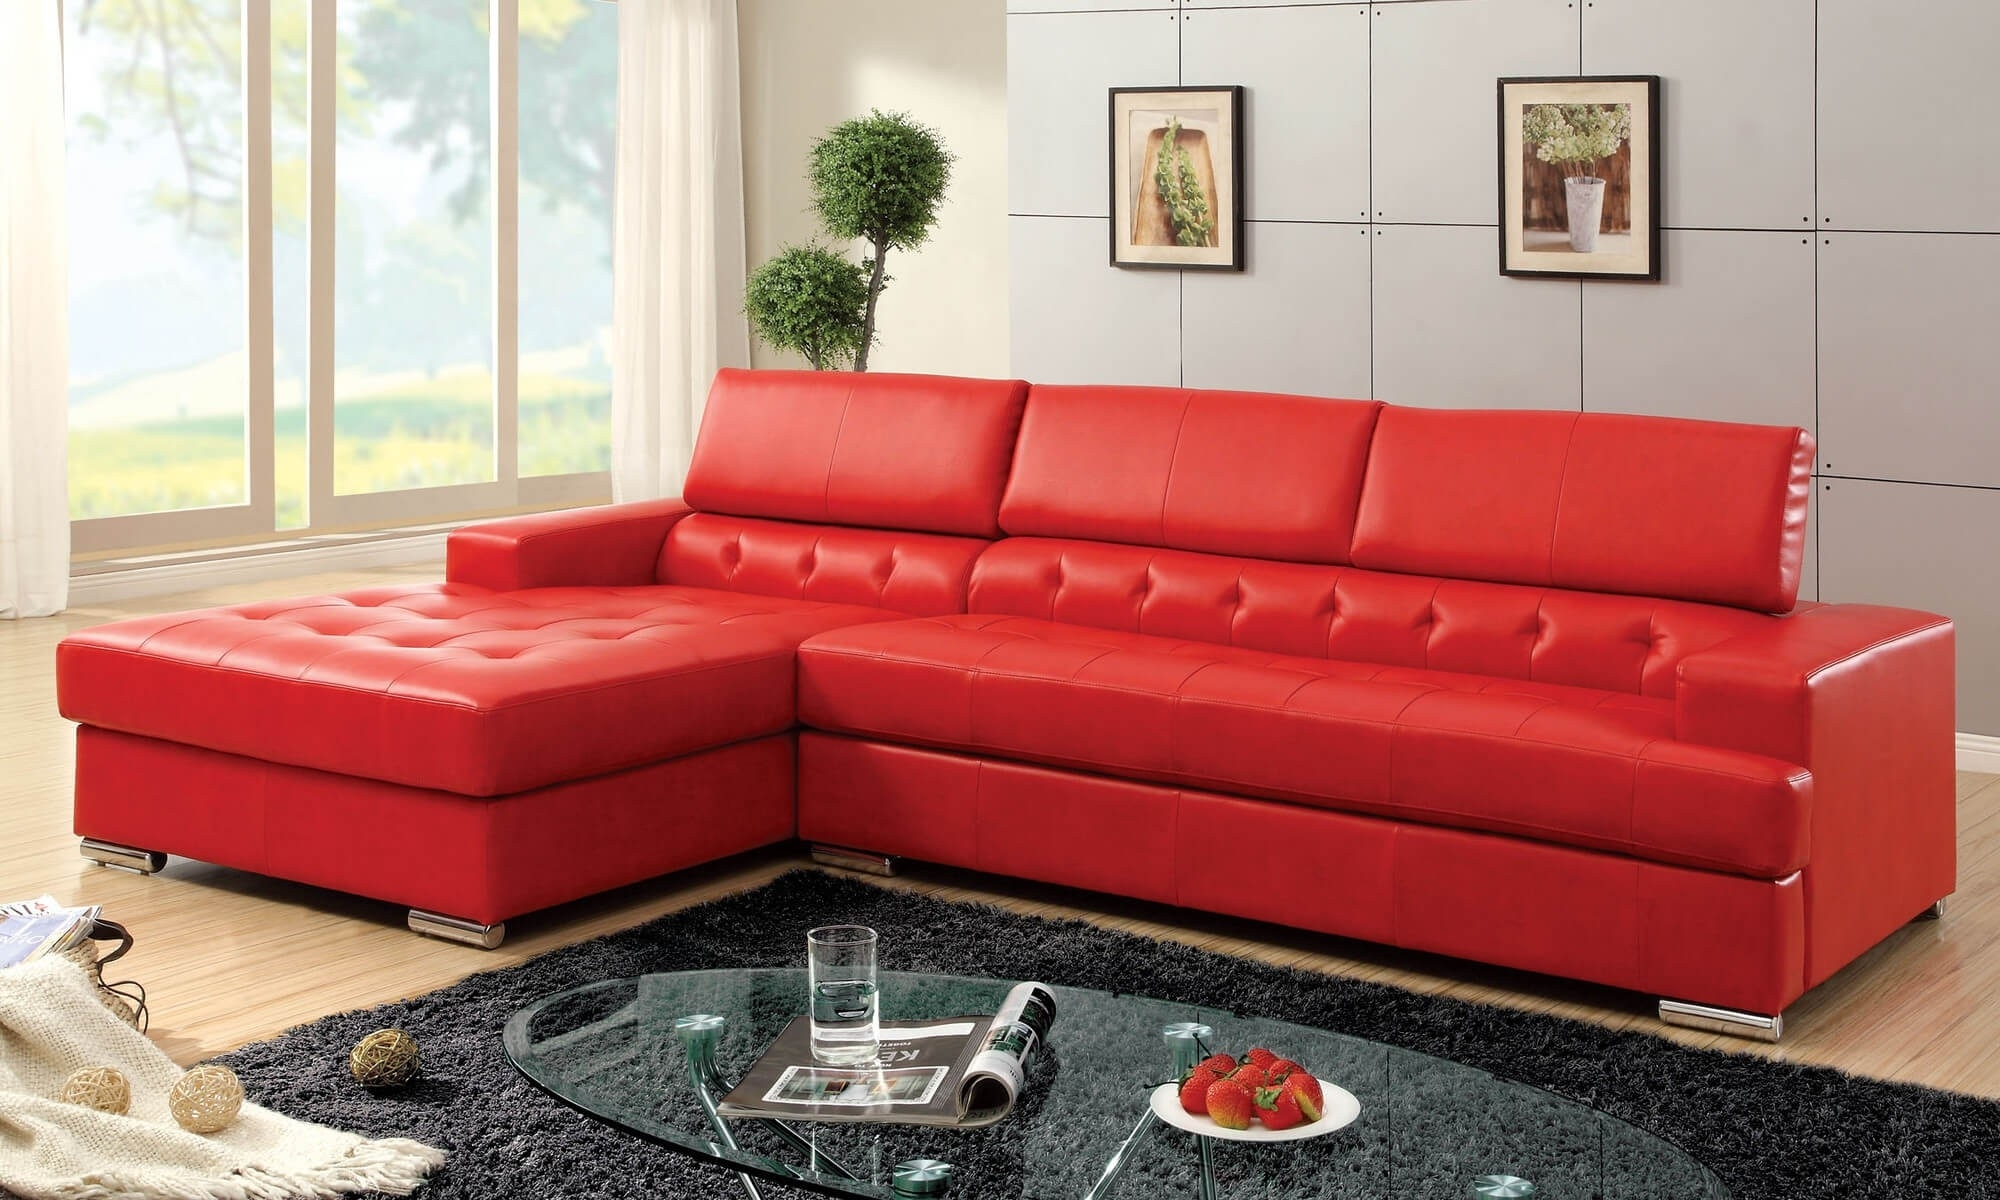 Beautiful Modern Red Leather Sectional Sofa - Buildsimplehome with Red Leather Sectionals With Ottoman (Image 3 of 15)